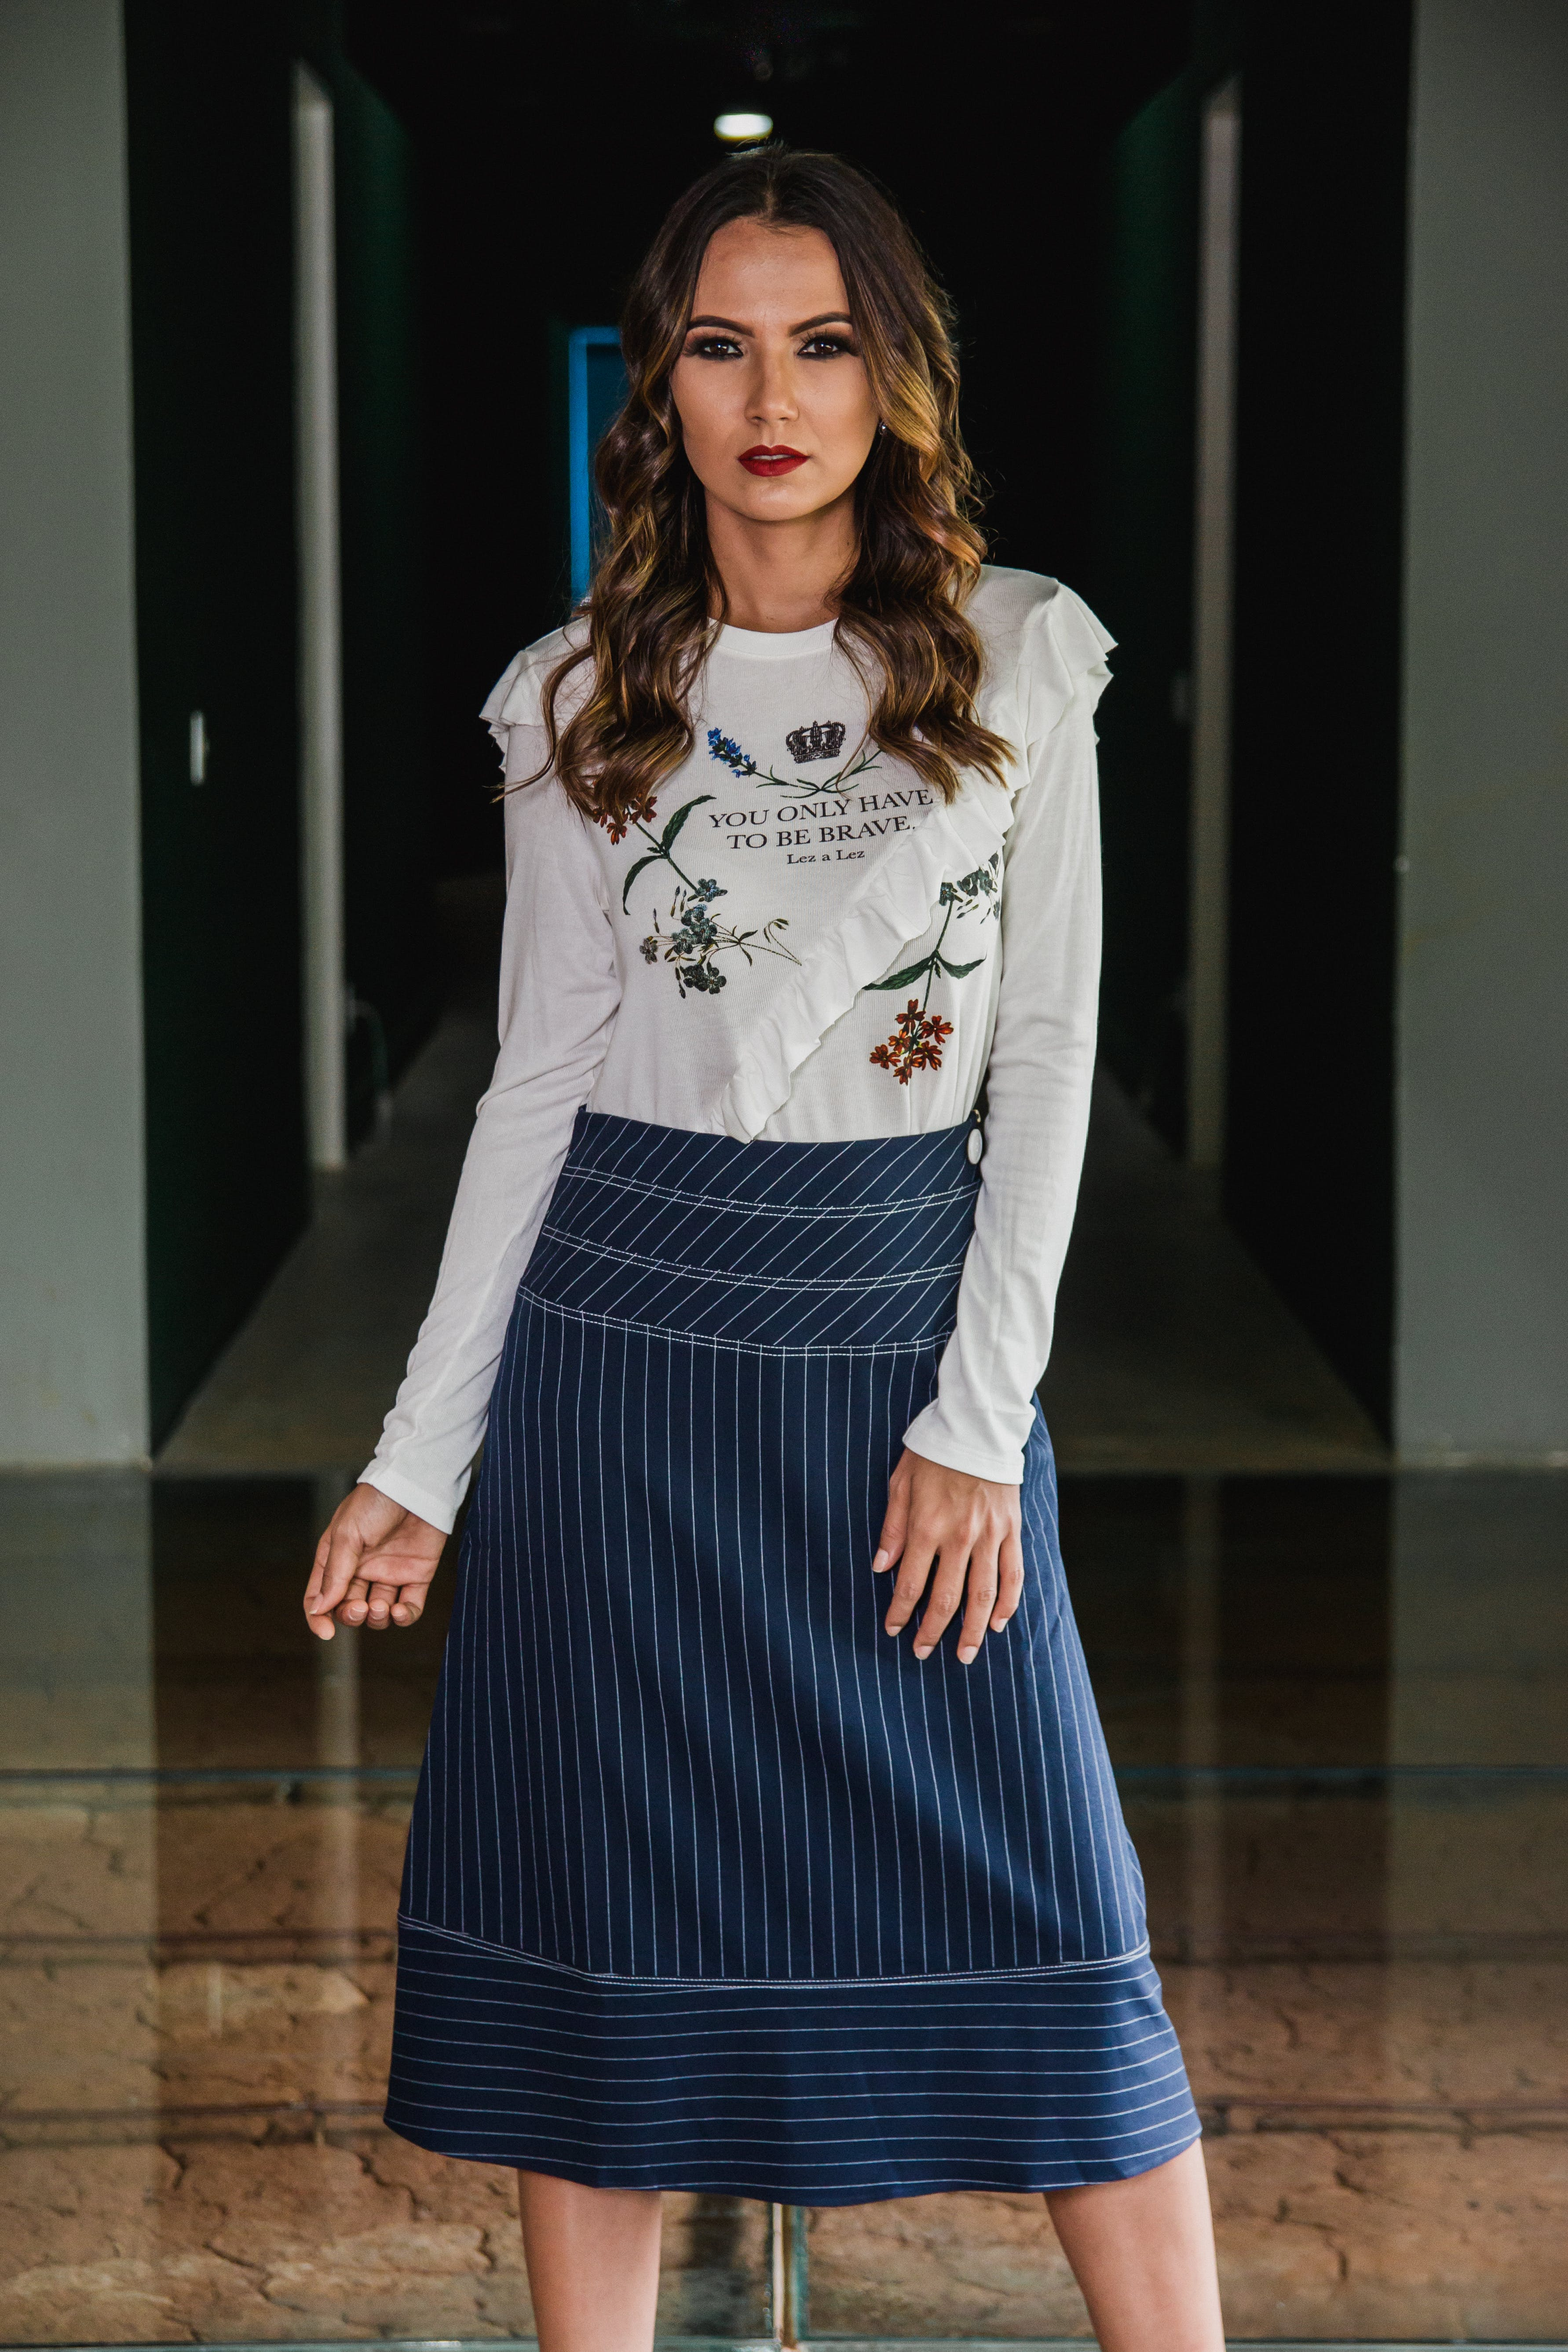 Photo of Woman Wearing Long sleeved Top and Long Skirt